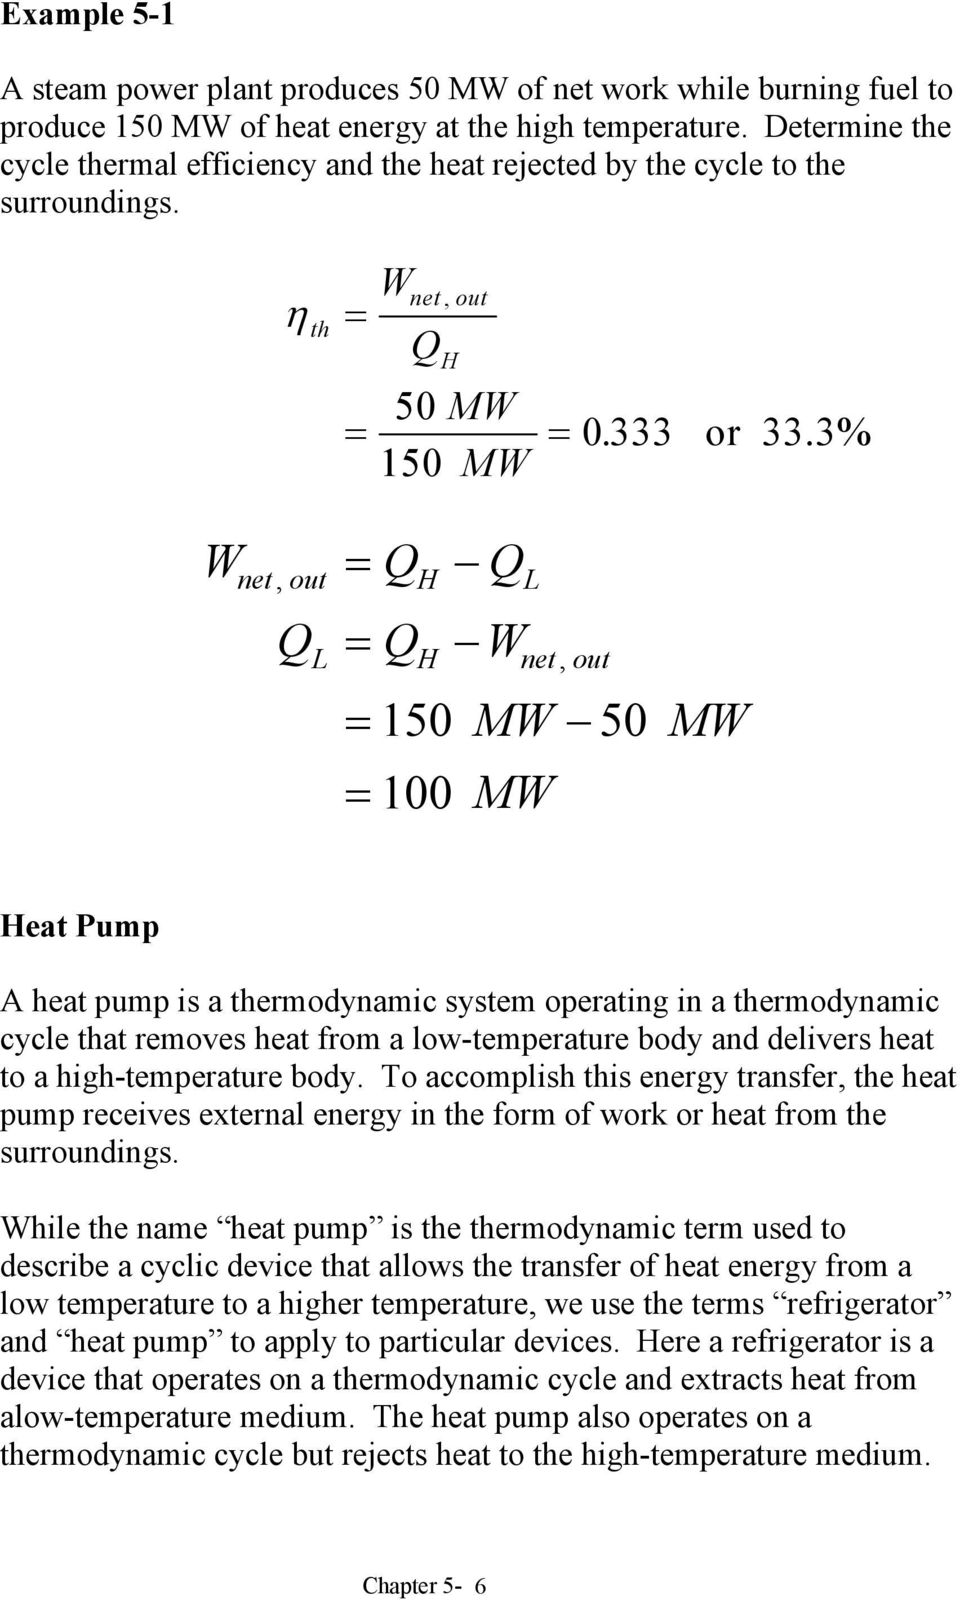 3% W net, out W net, out 150 MW 50 100 MW MW eat Pump A heat pump is a thermodynamic system operating in a thermodynamic cycle that removes heat from a low-temperature body and delivers heat to a